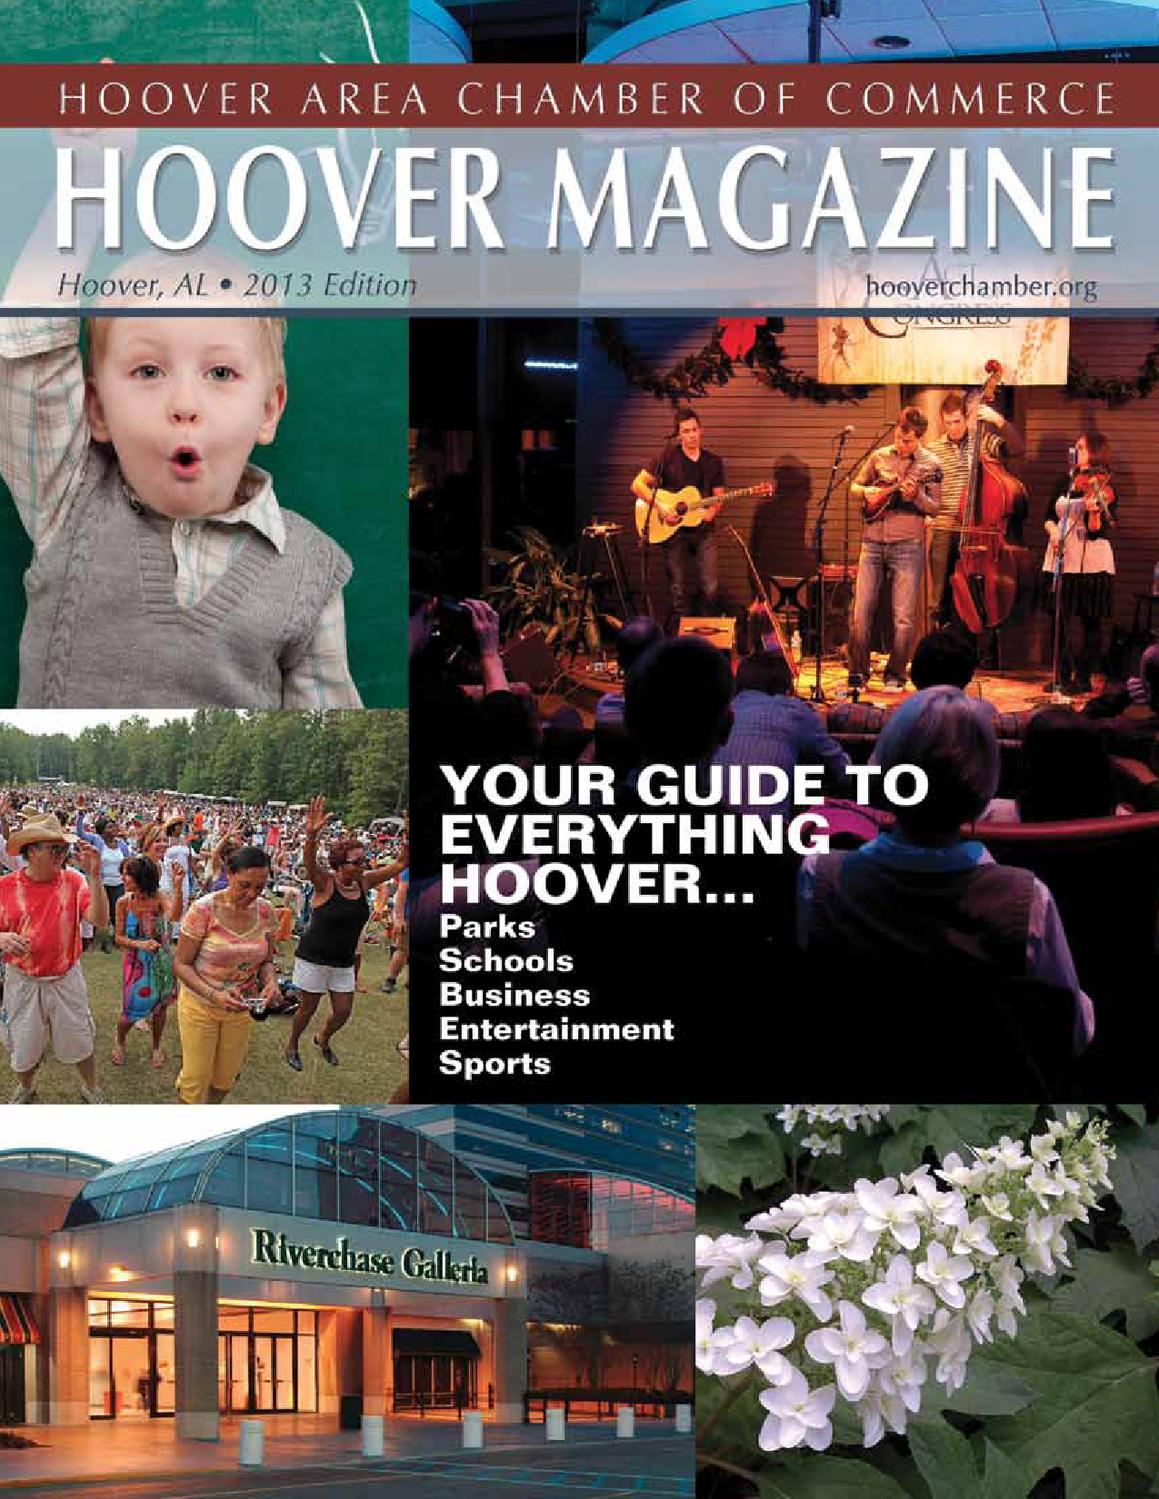 Hoover Magazine By Fergus Media Issuu Hopkins Towing Solutions 4wire Flat Extension 18quot Walmartcom